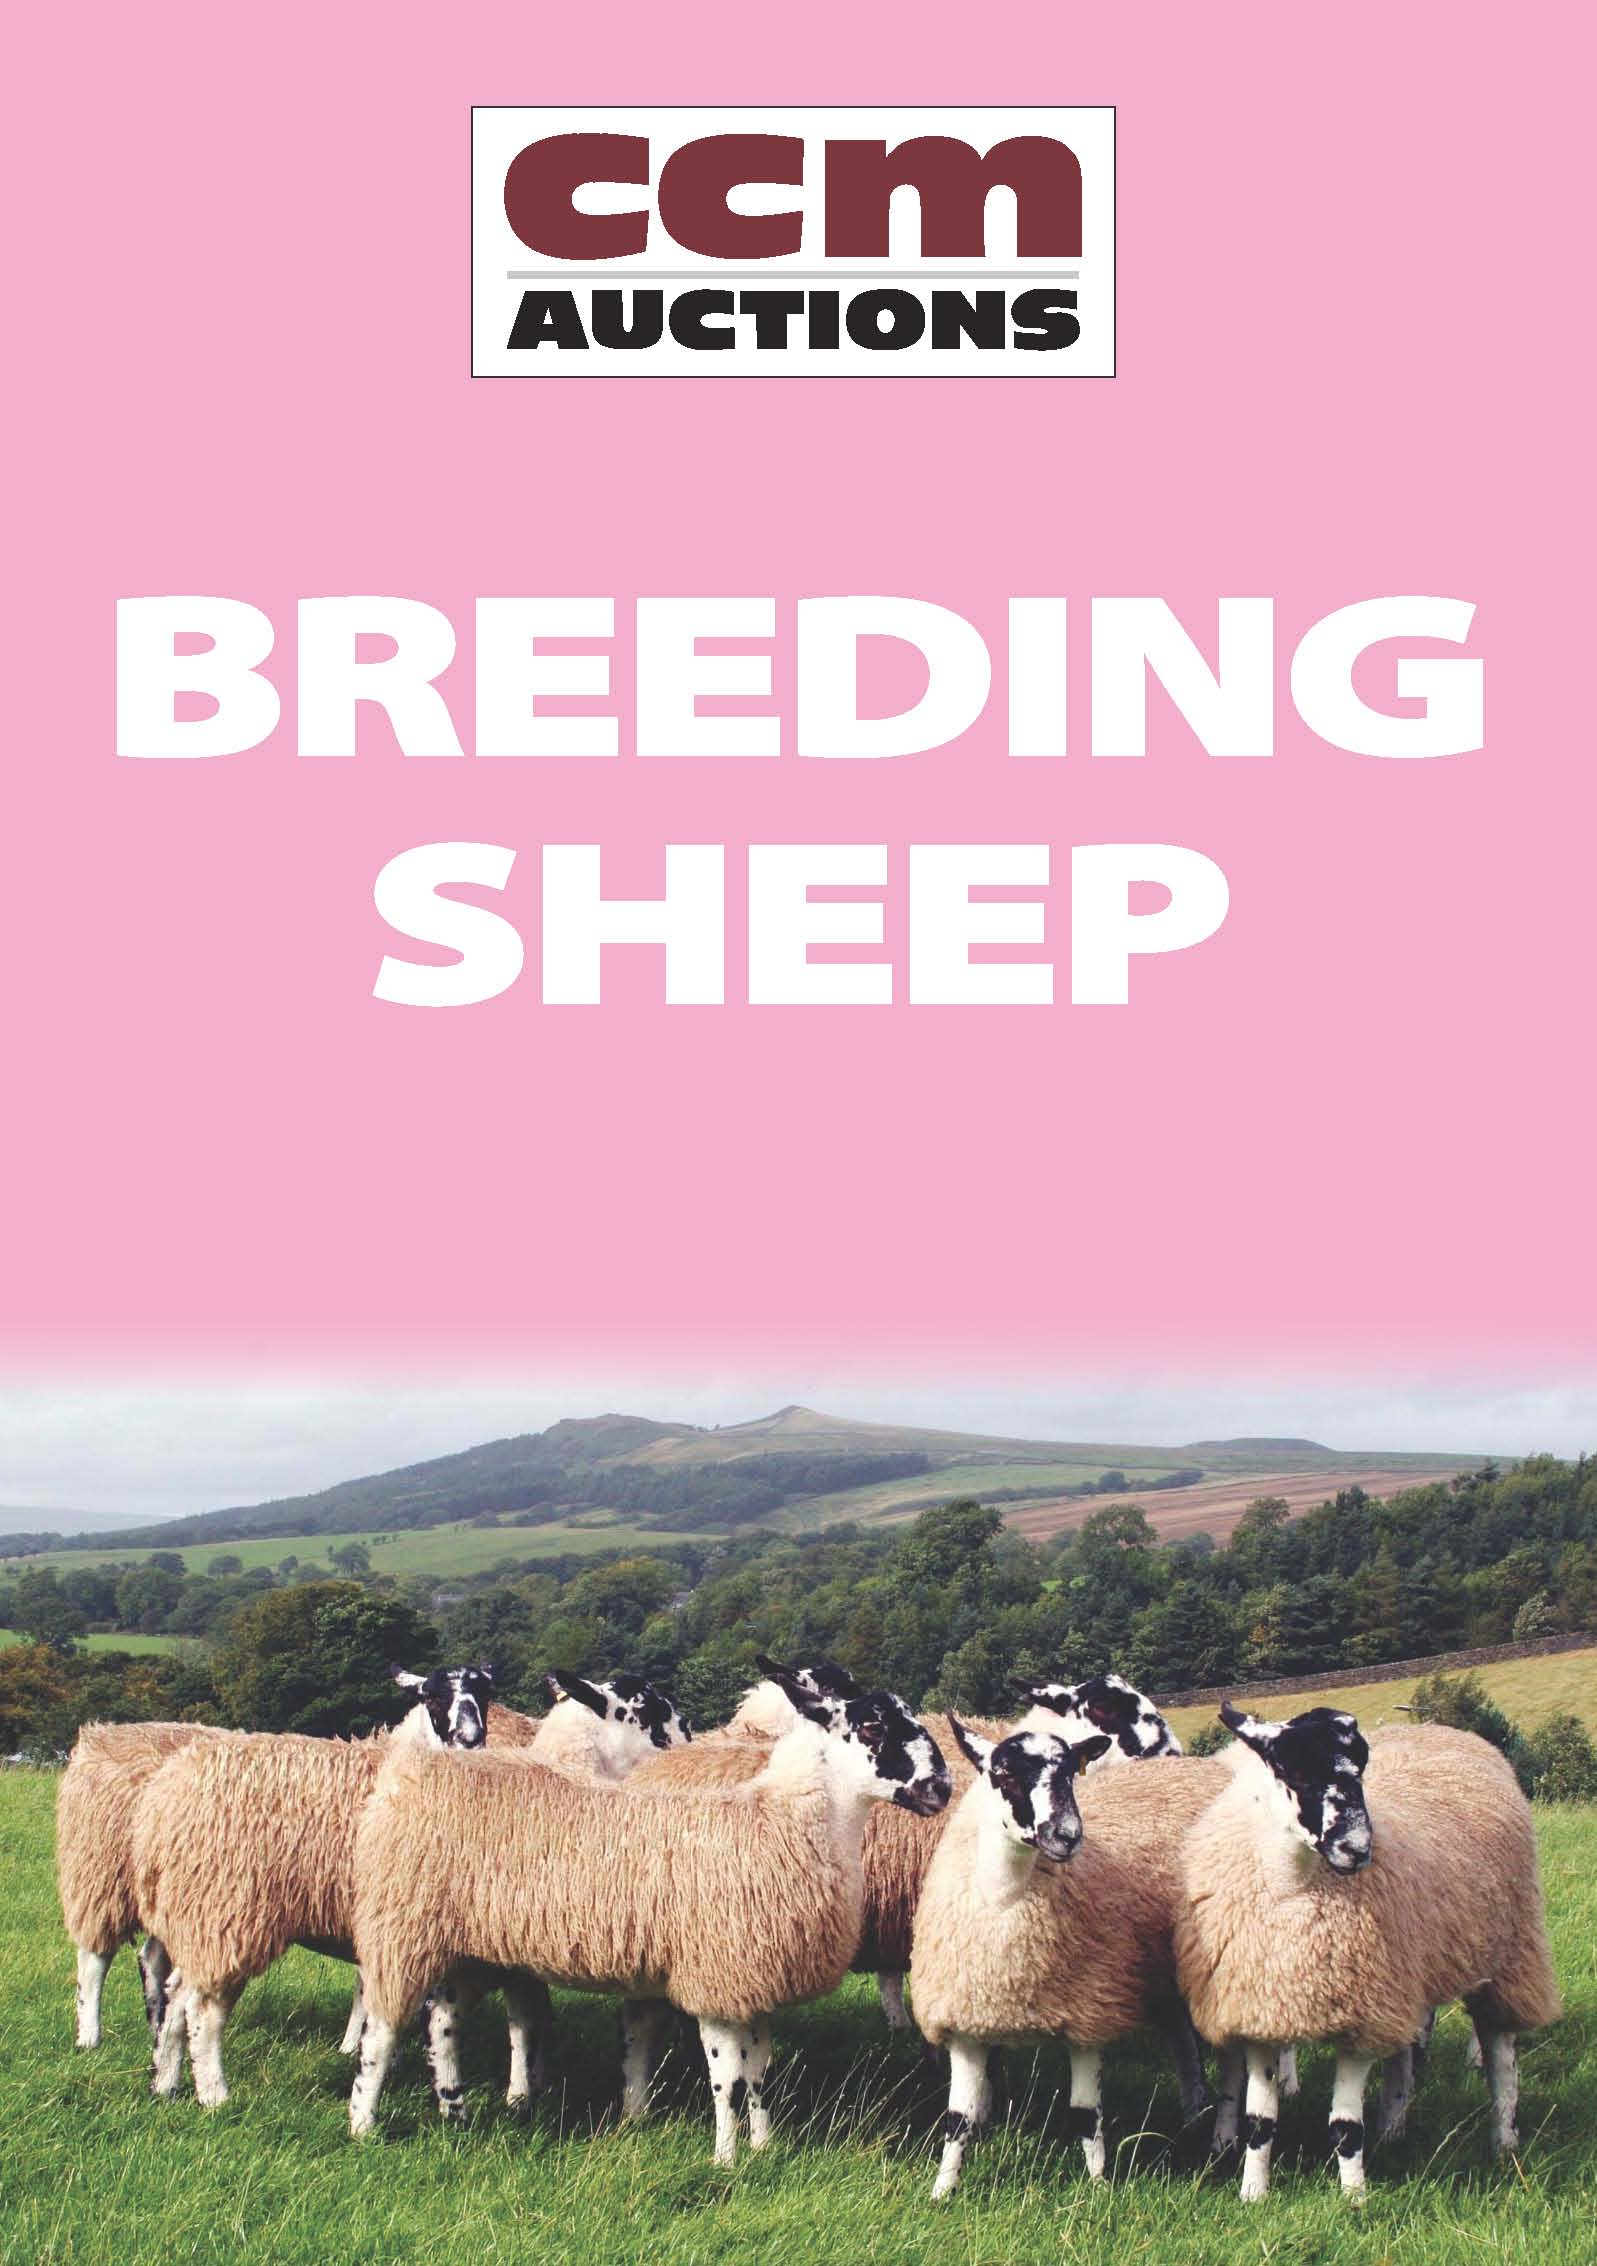 BREEDING SHEEP - TUESDAY 29TH SEPTEMBER 2015